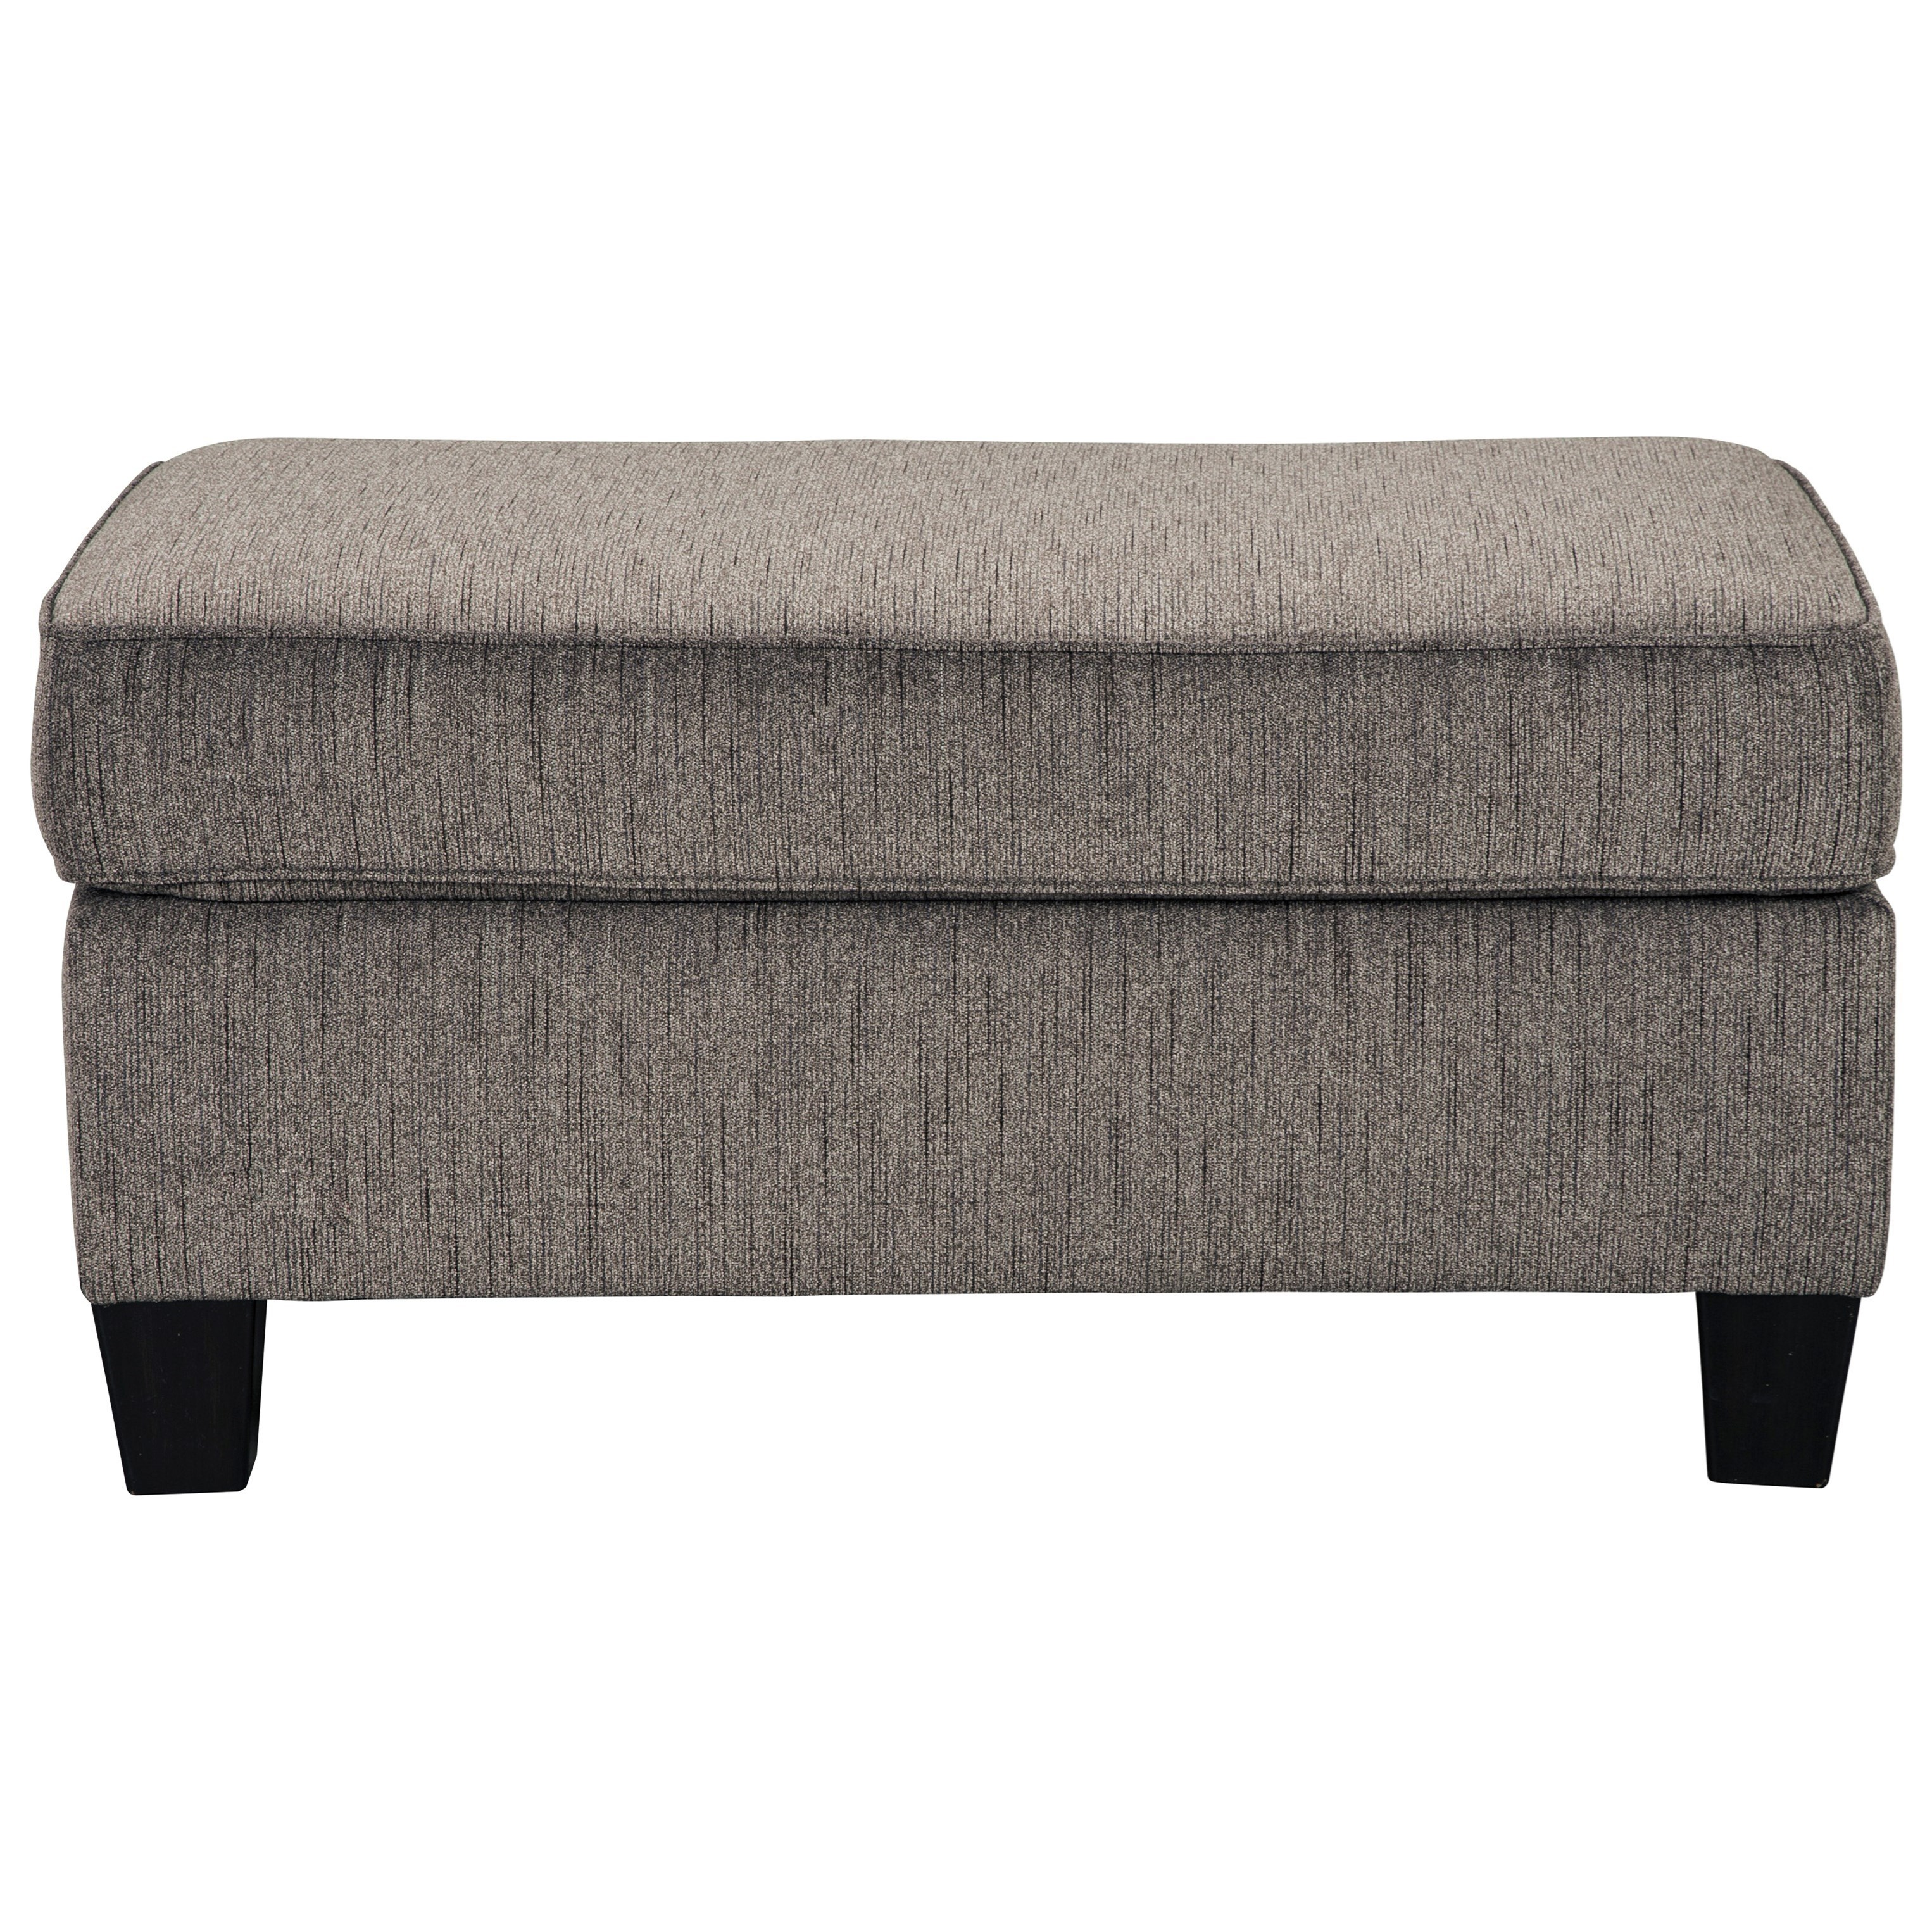 Theon Theon Ottoman by Ashley at Morris Home